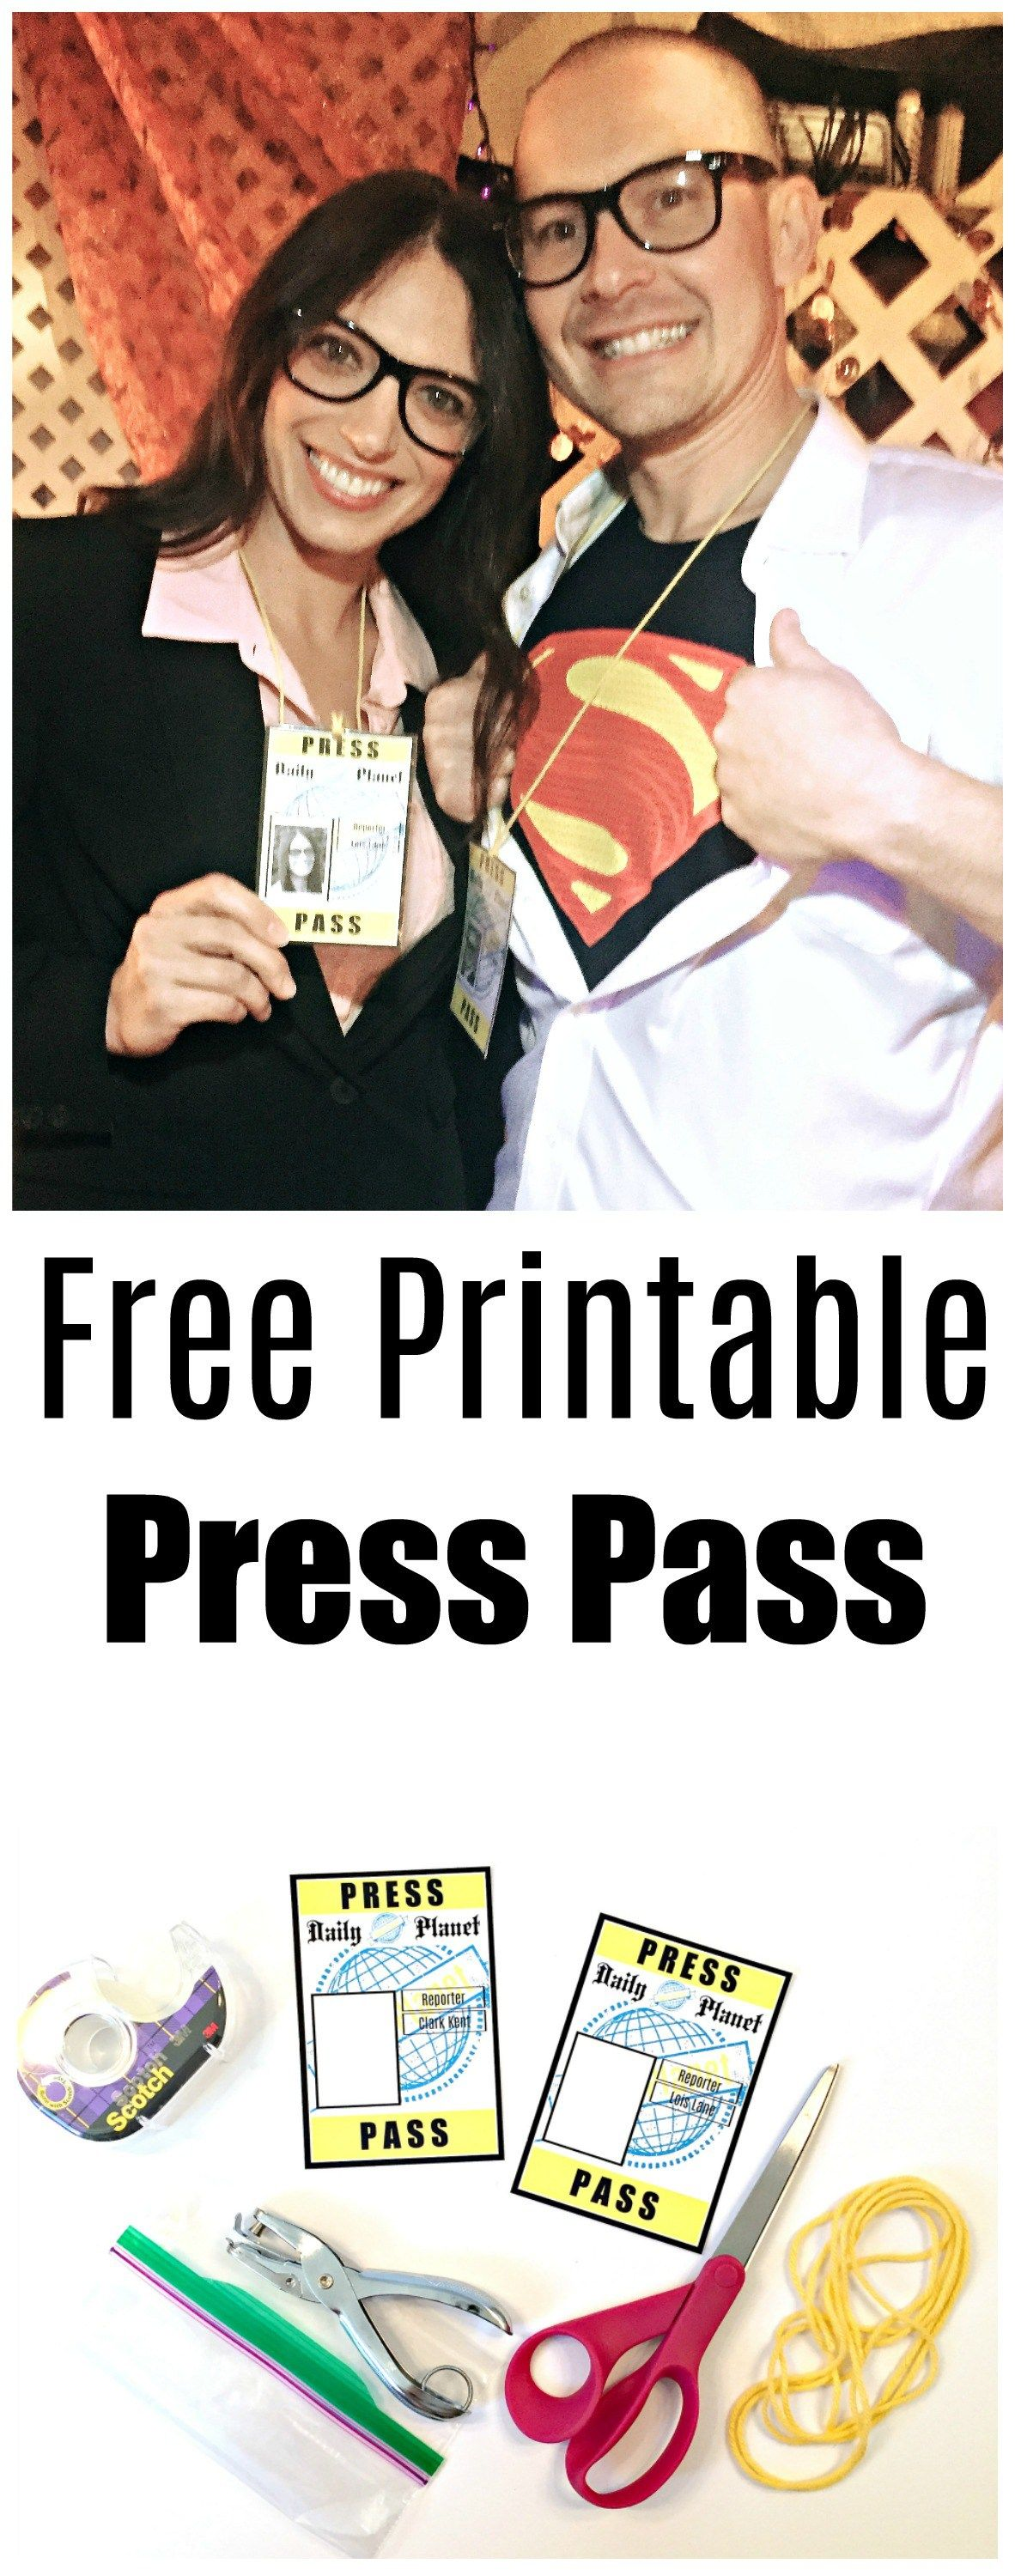 image relating to Lois Lane Press Pass Printable named Cost-free Printable Thrust P for Lois Lane and Clark Kent